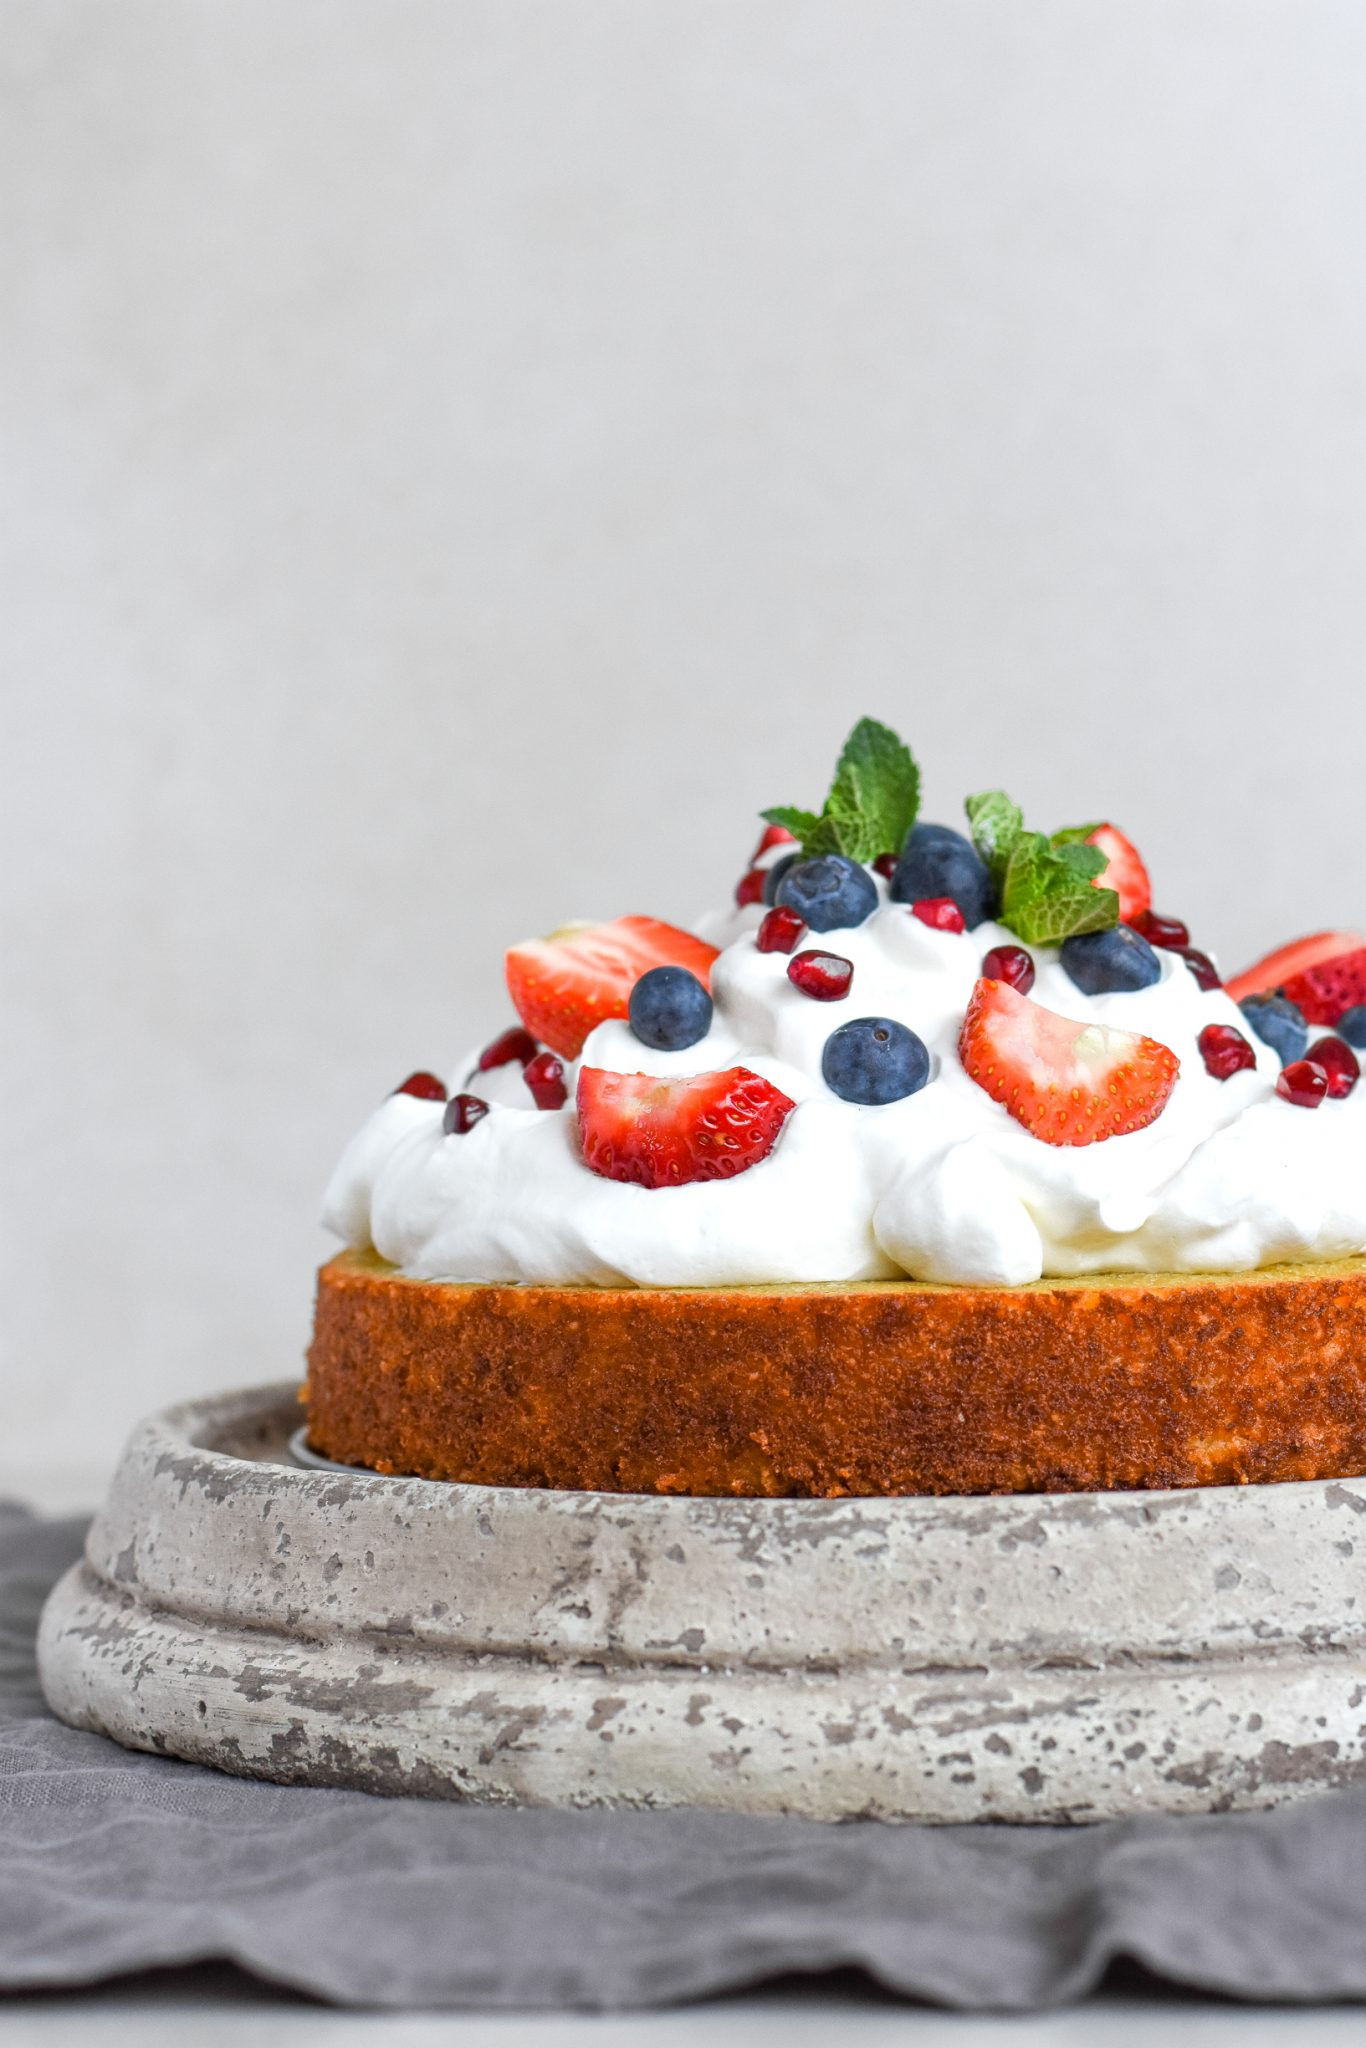 Gluten and Sugar-Free Coconut Cake with Berries